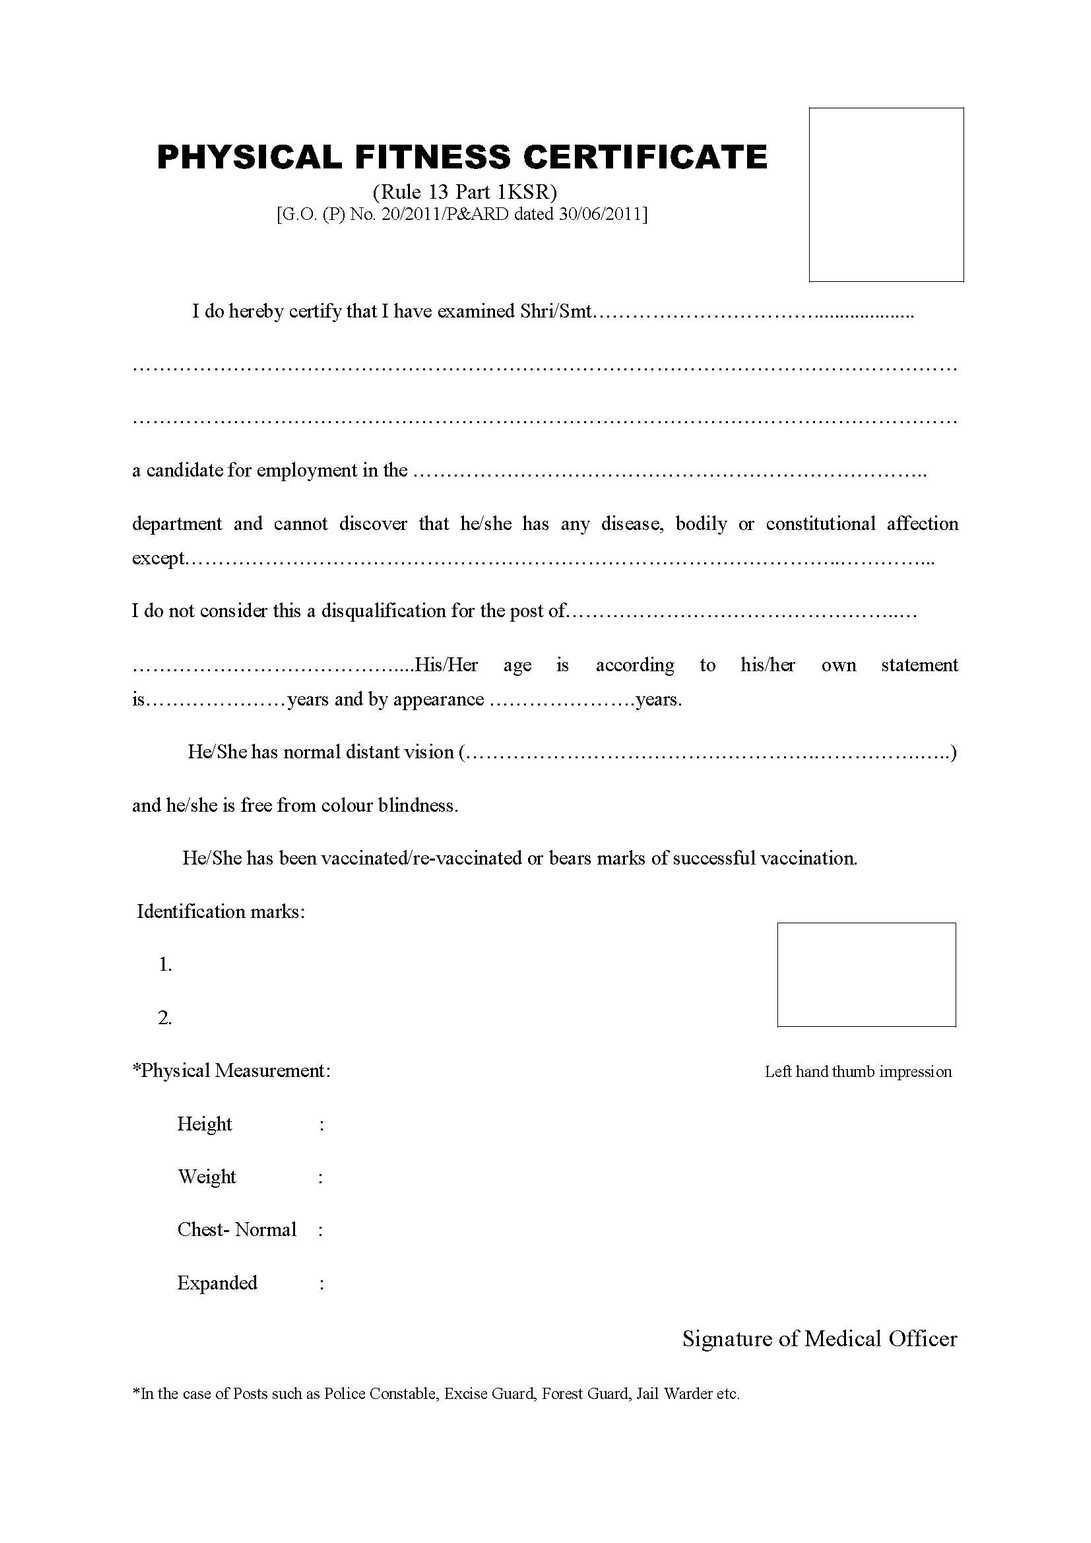 Physical Fitness Certificate Format Pdf  Kayafitnessco regarding Physical Fitness Certificate Templates